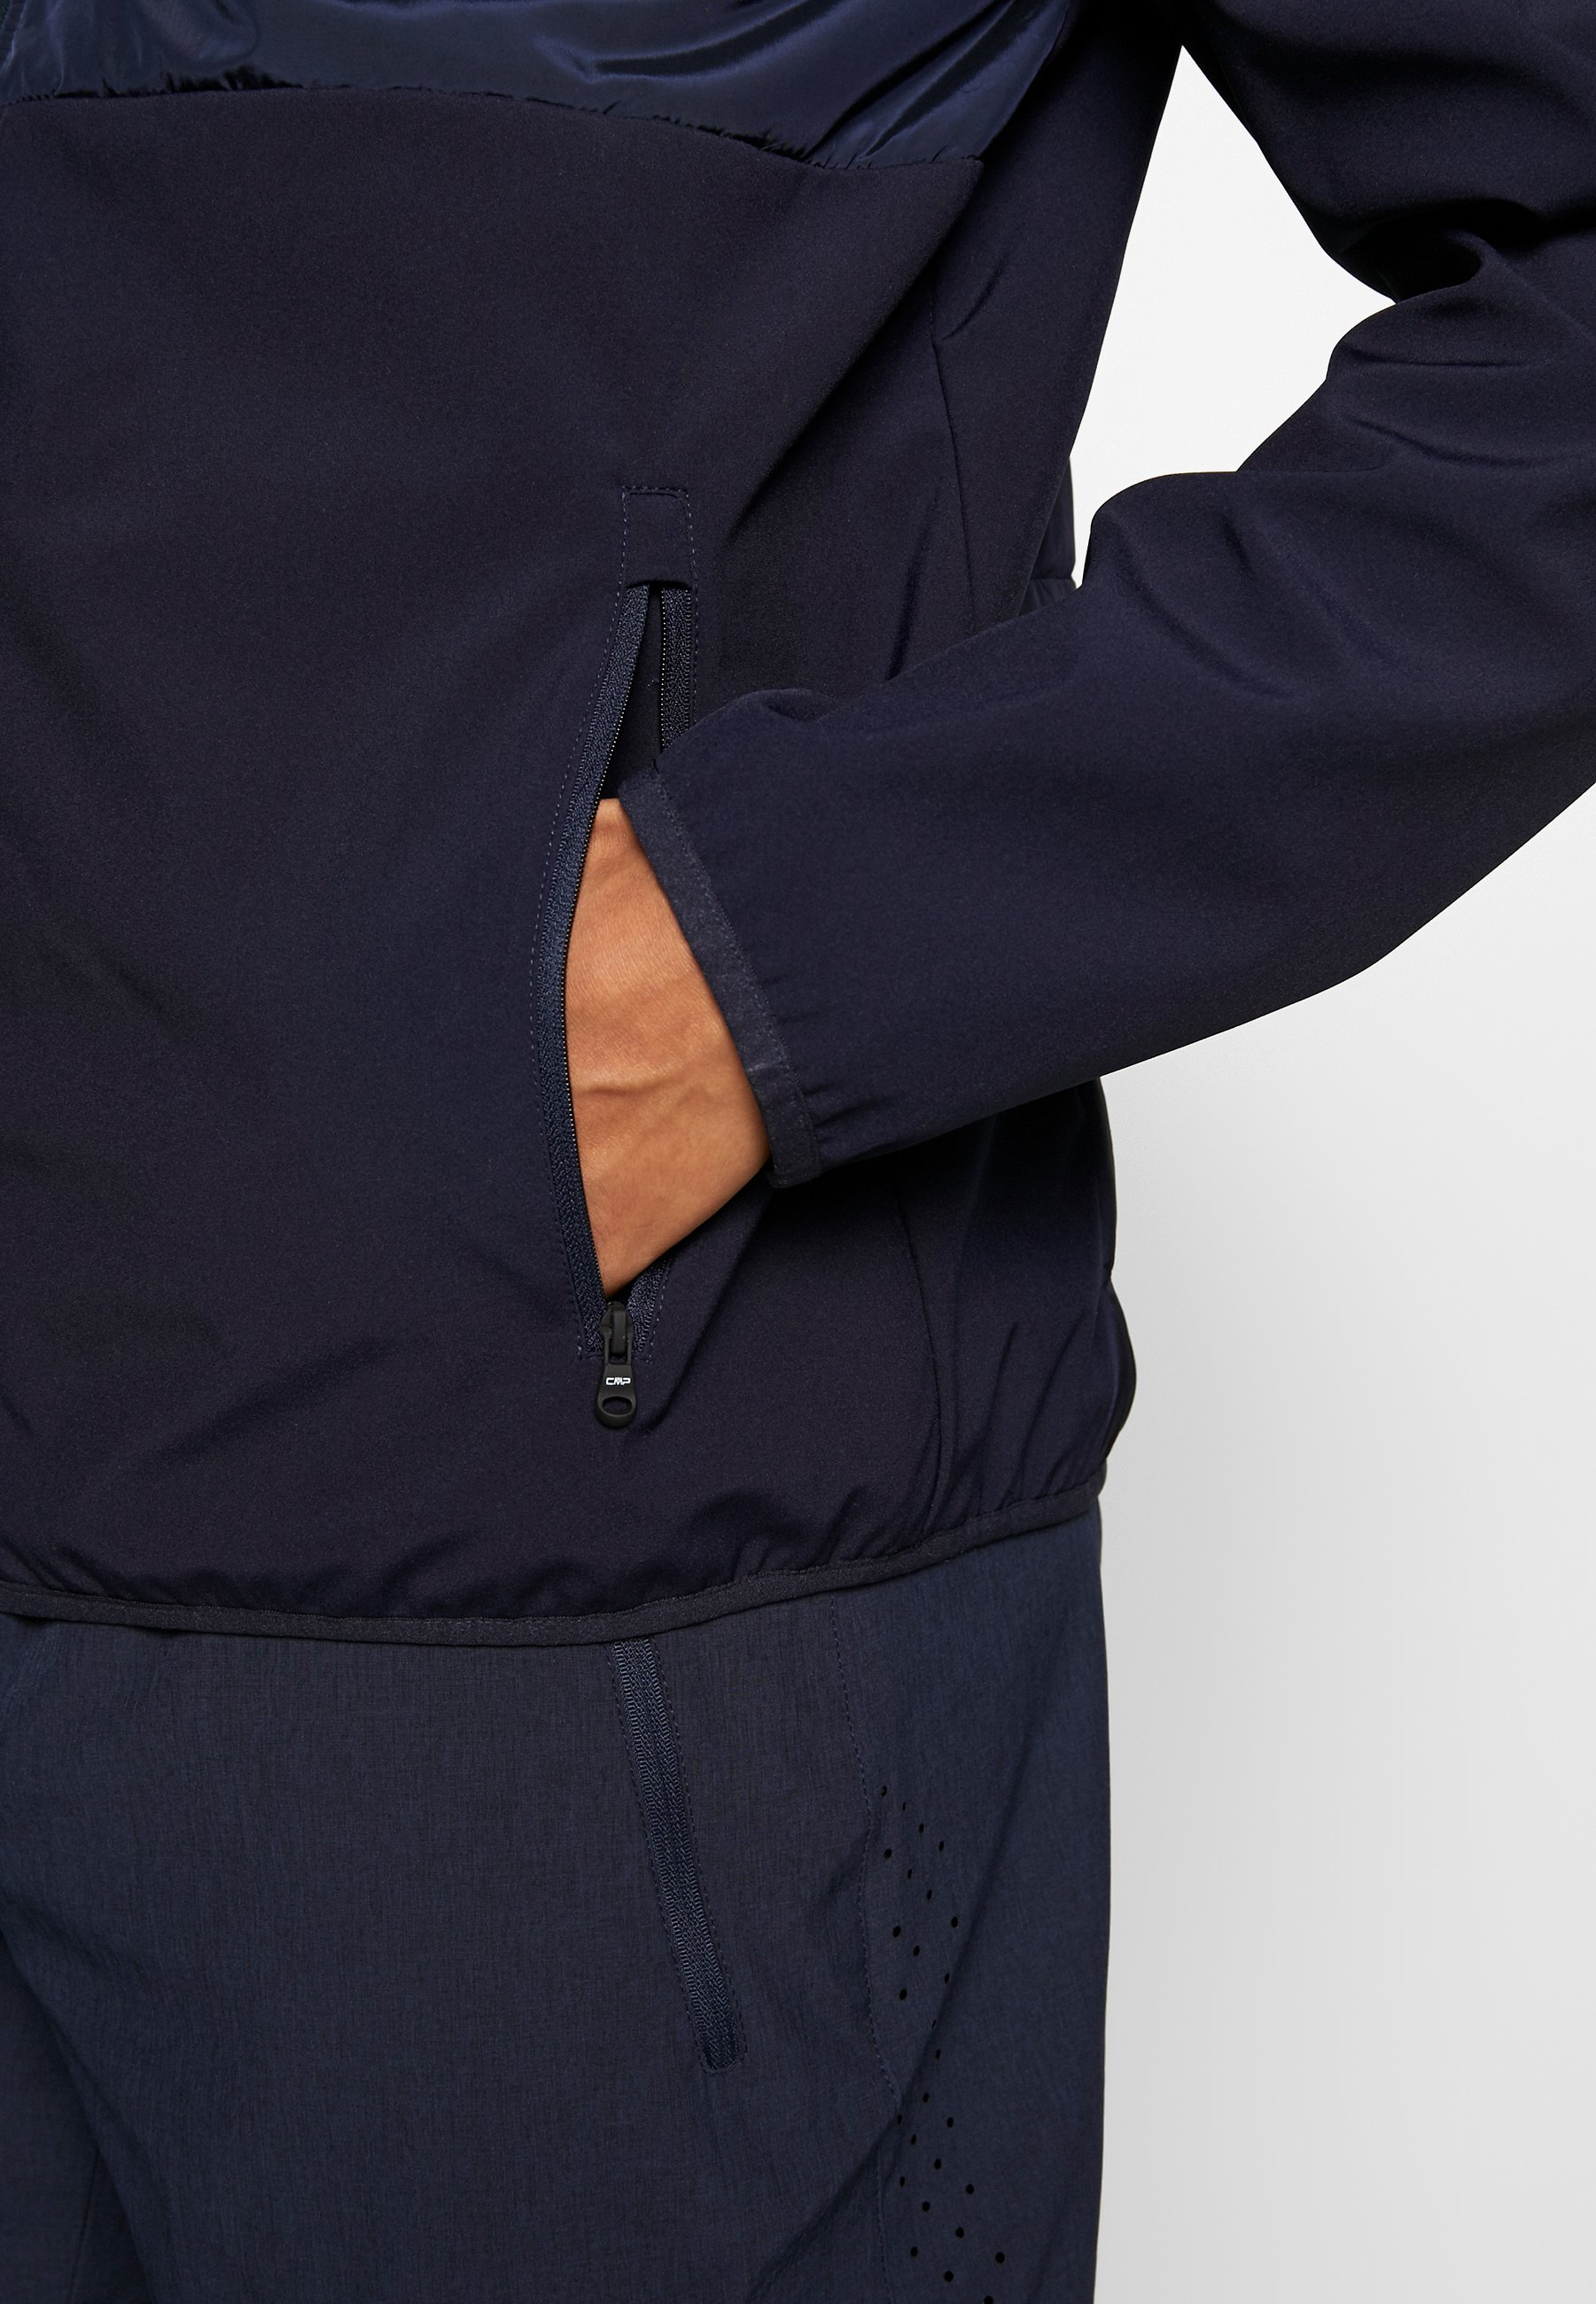 Cmp Man Jacket - Regenjas Dark Blue